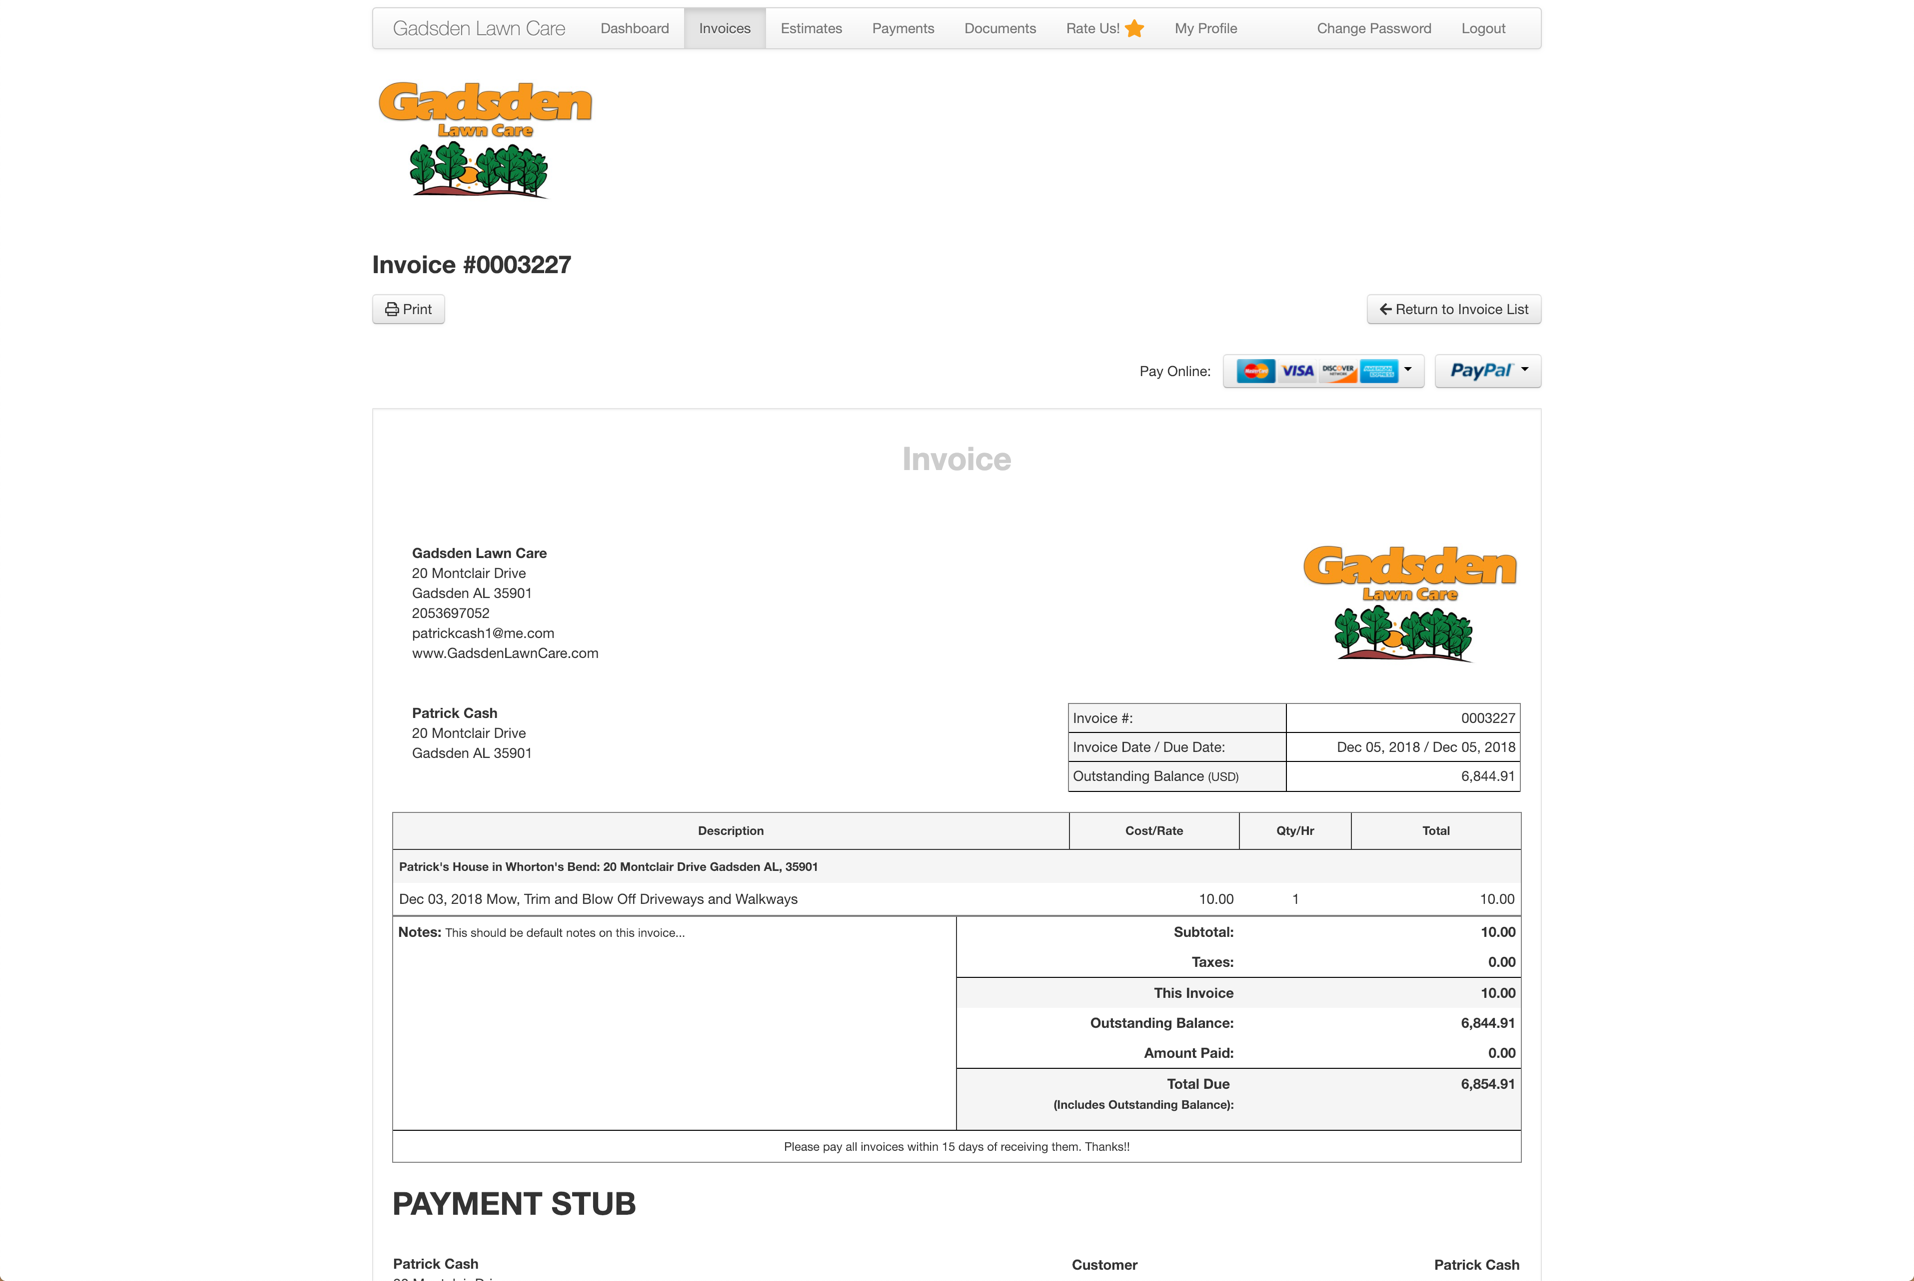 CLient portal for paying invoices and requesting work.